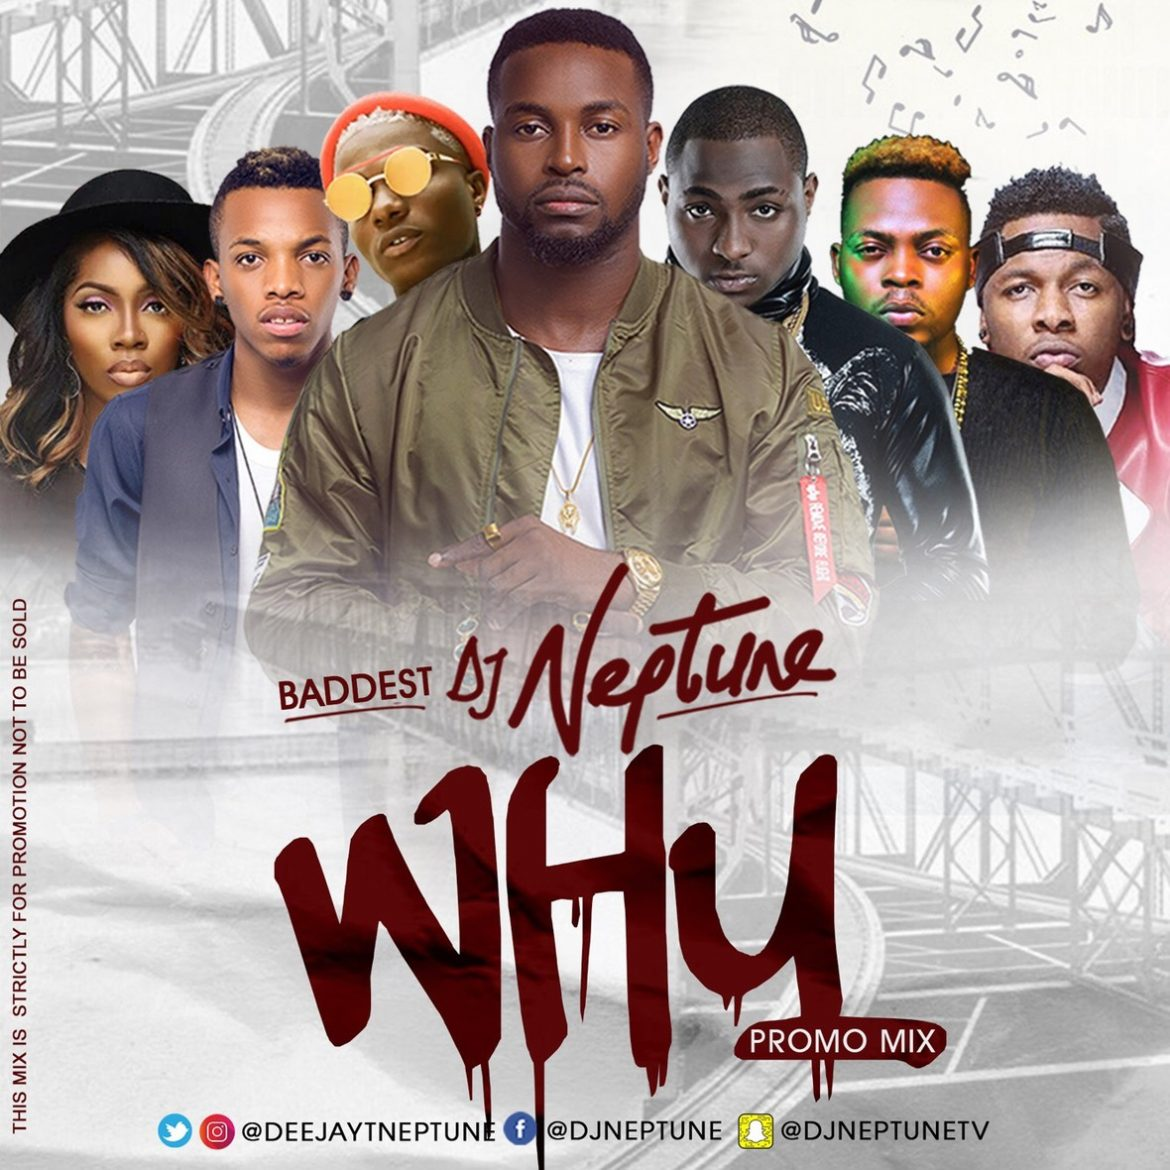 DJ Neptune, WHY,Mixtape